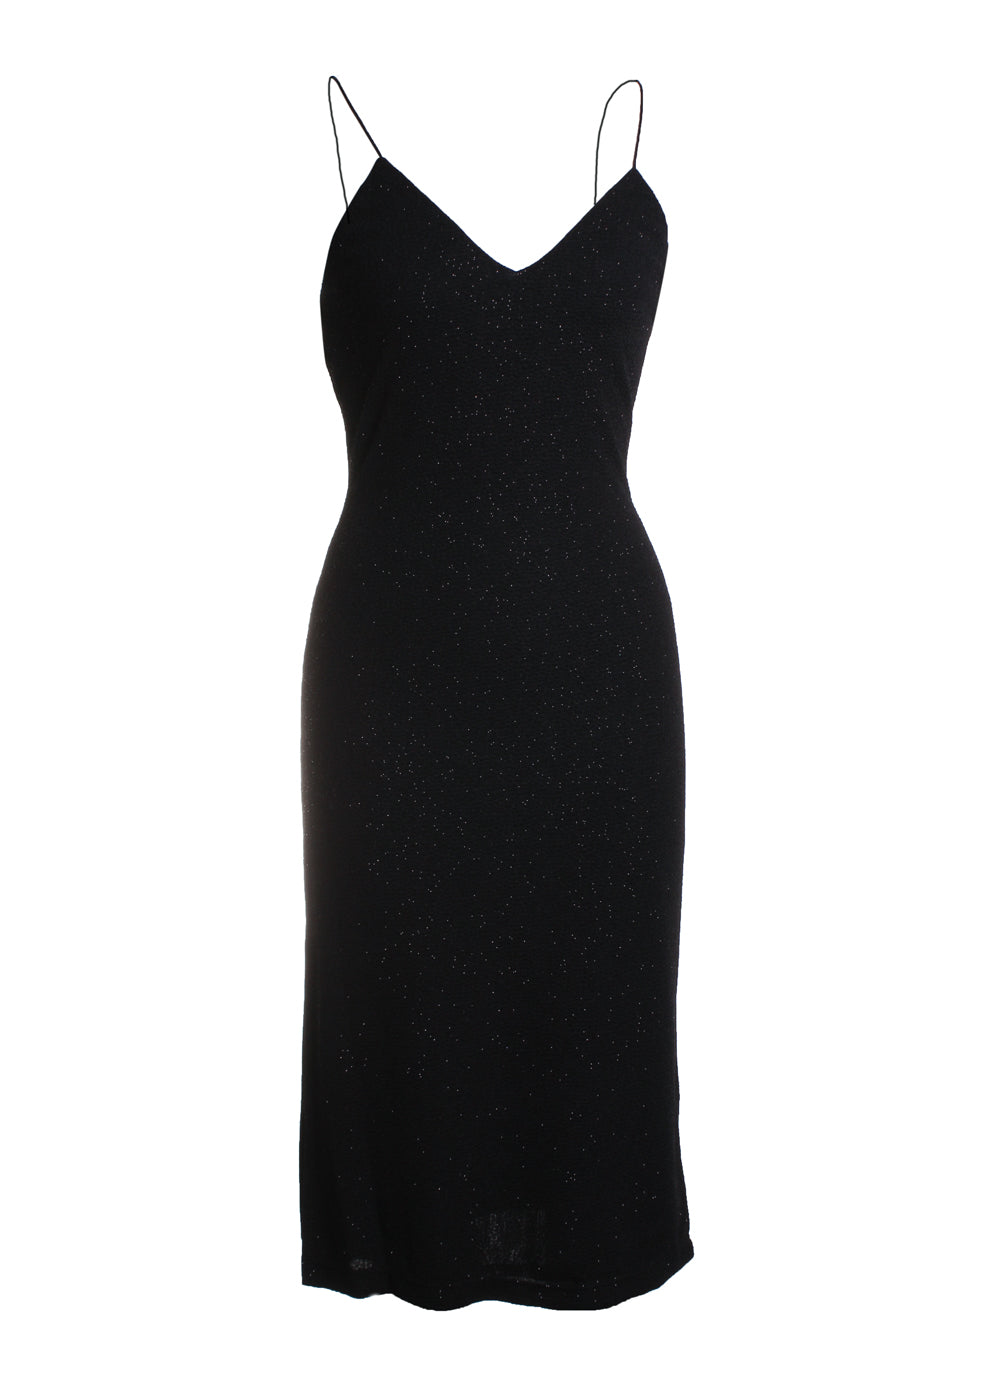 Stila Fitted Side-Slit Dress